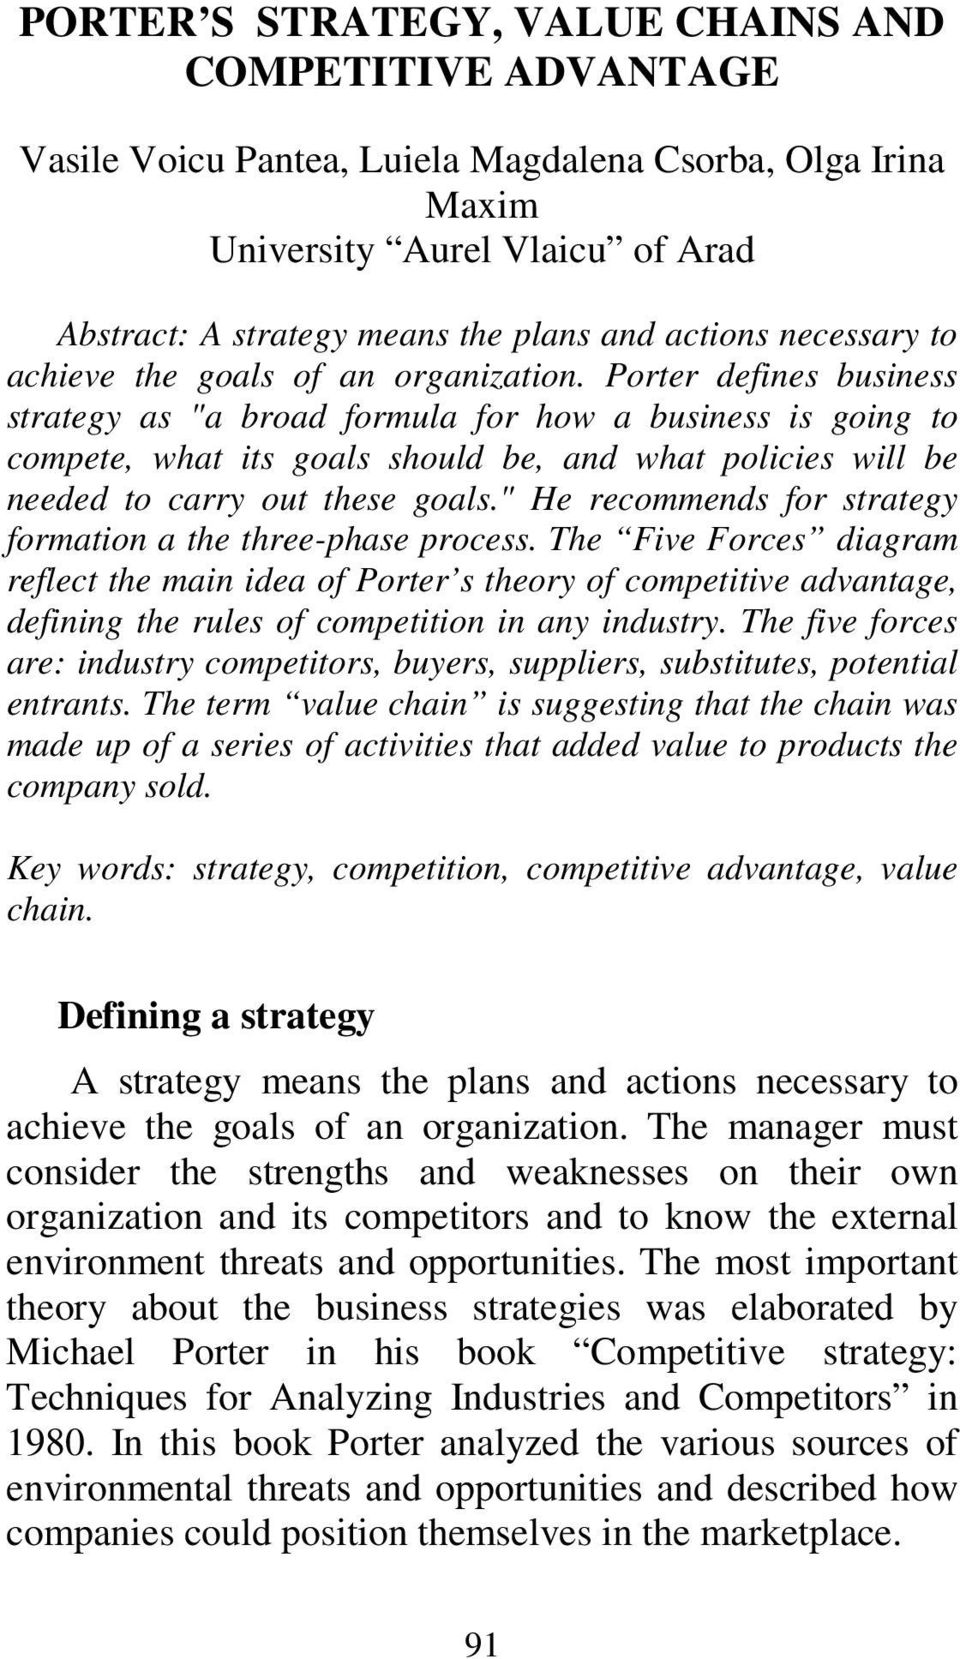 "Porter defines business strategy as ""a broad formula for how a business is going to compete, what its goals should be, and what policies will be needed to carry out these goals."